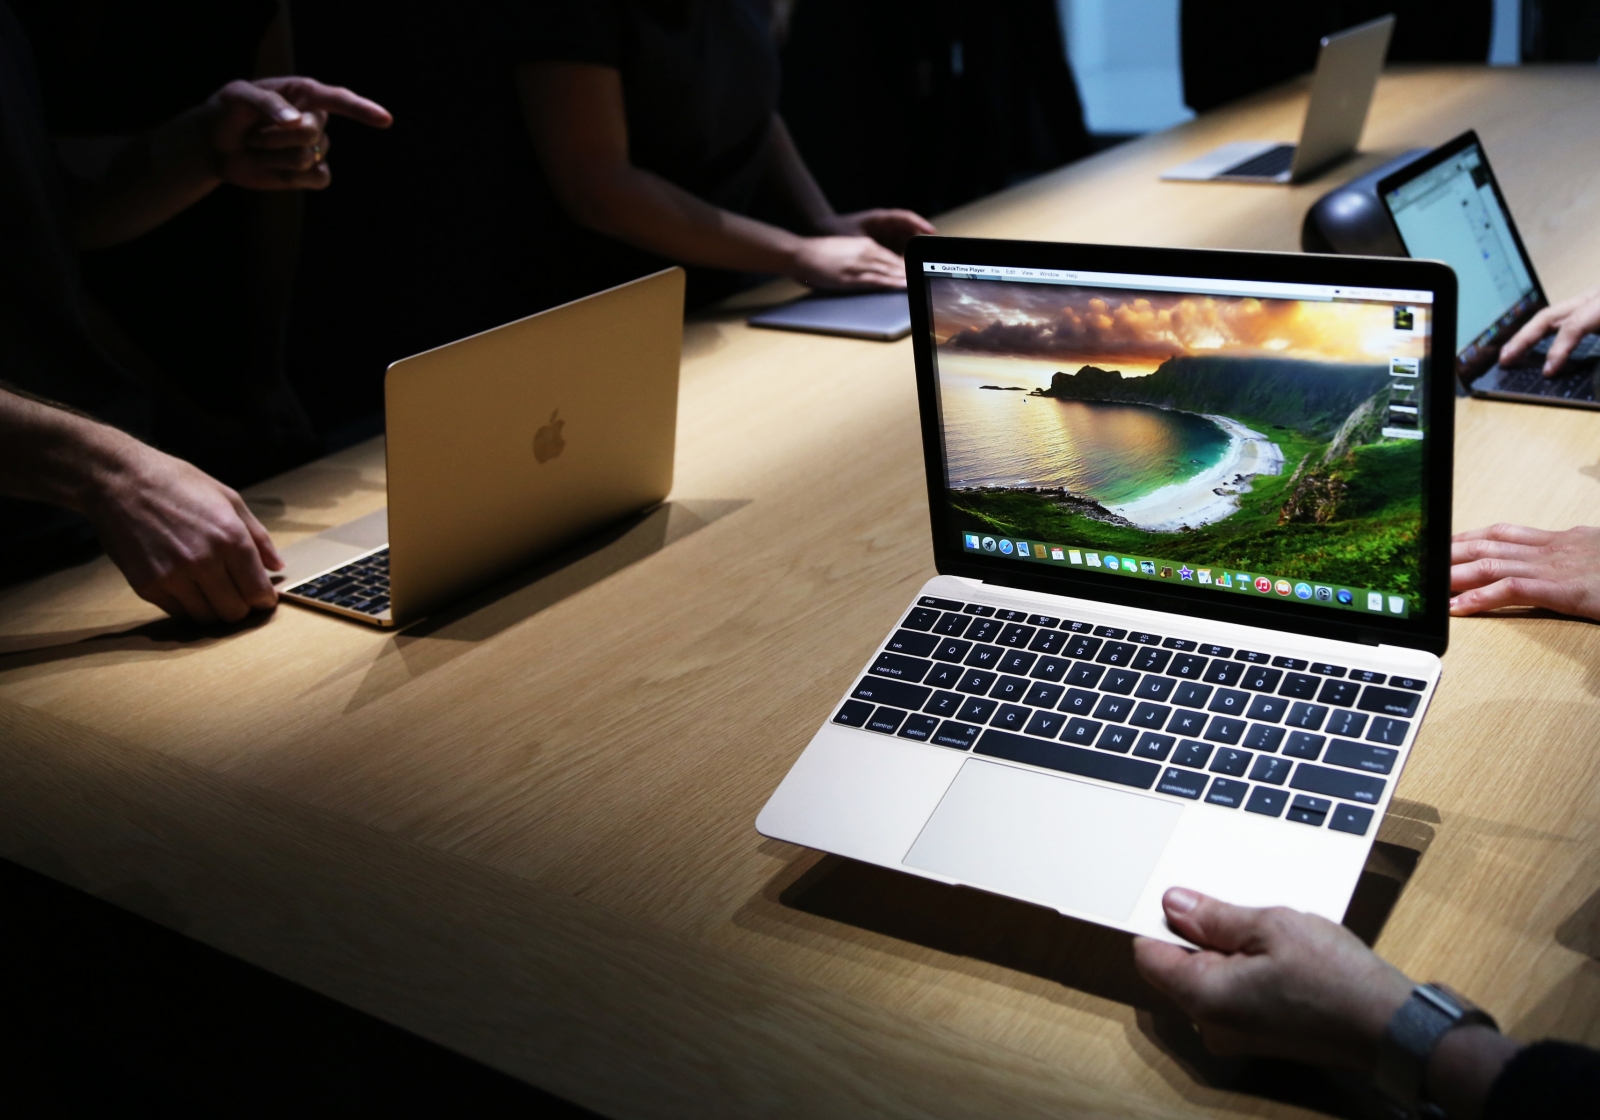 Macbook Pro 2017: What laptops to expect at Apple WWDC 2017